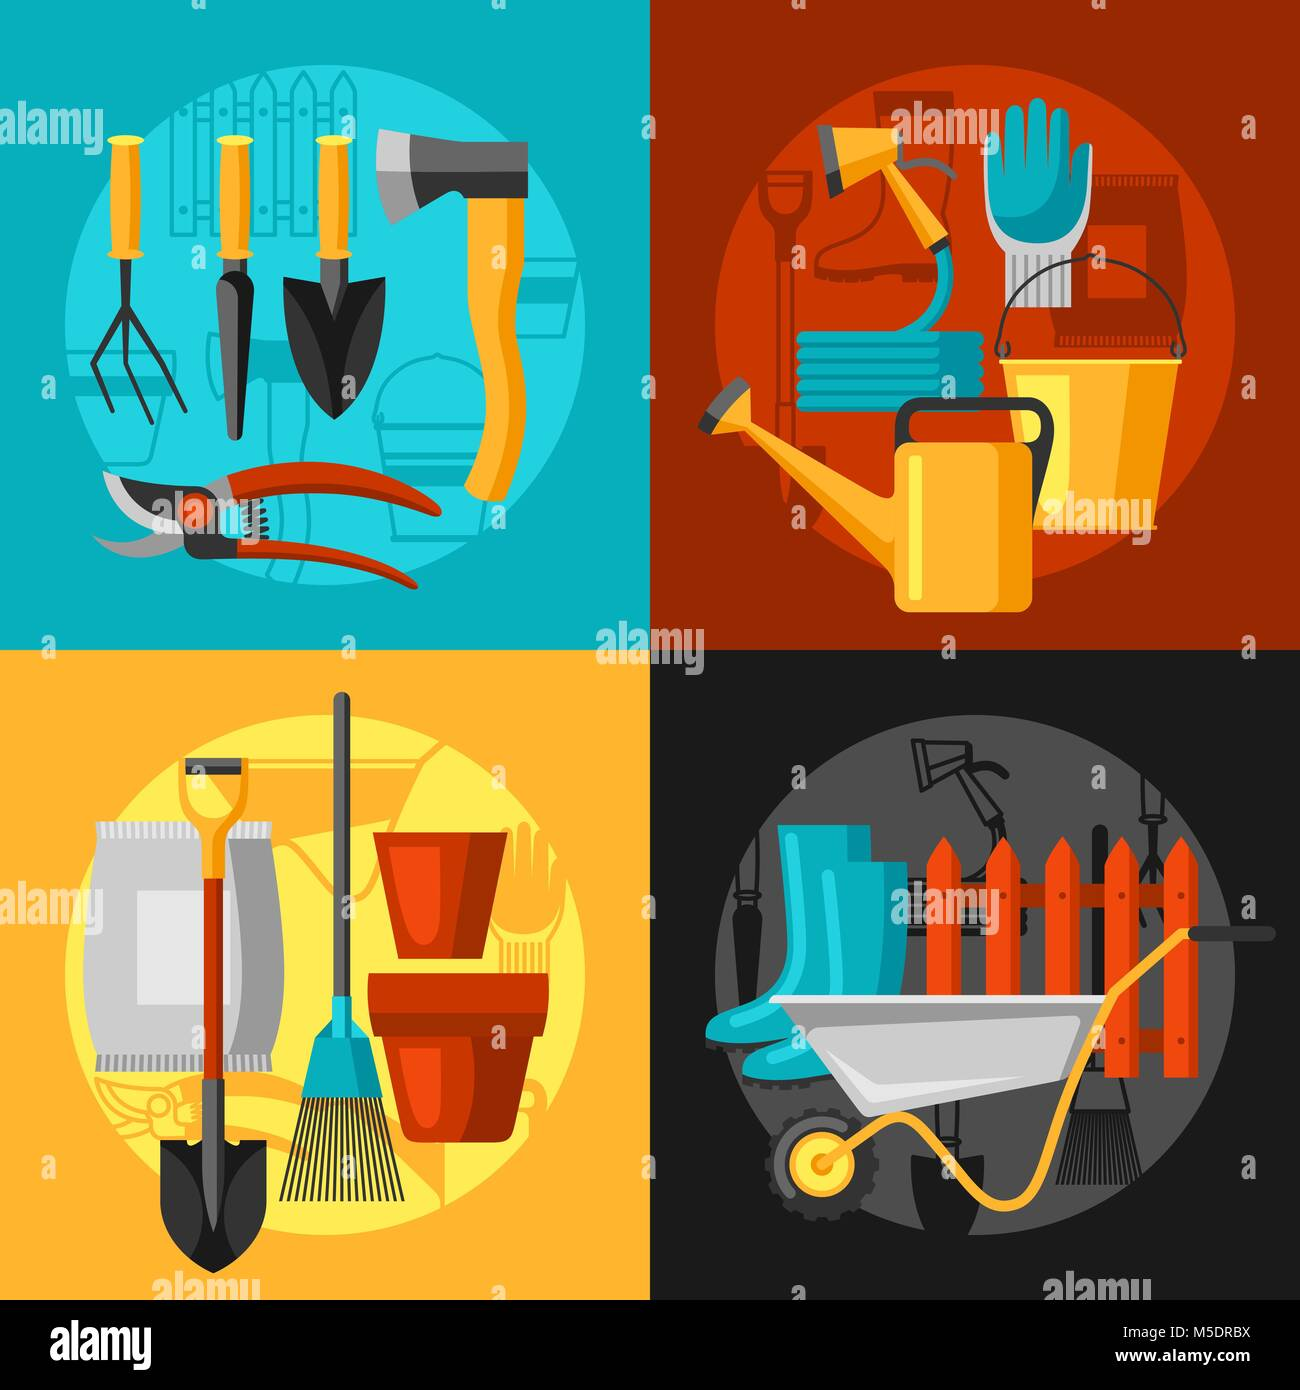 Concept Background With Garden Tools And Icons. All For Gardening Business  Illustration   Stock Image